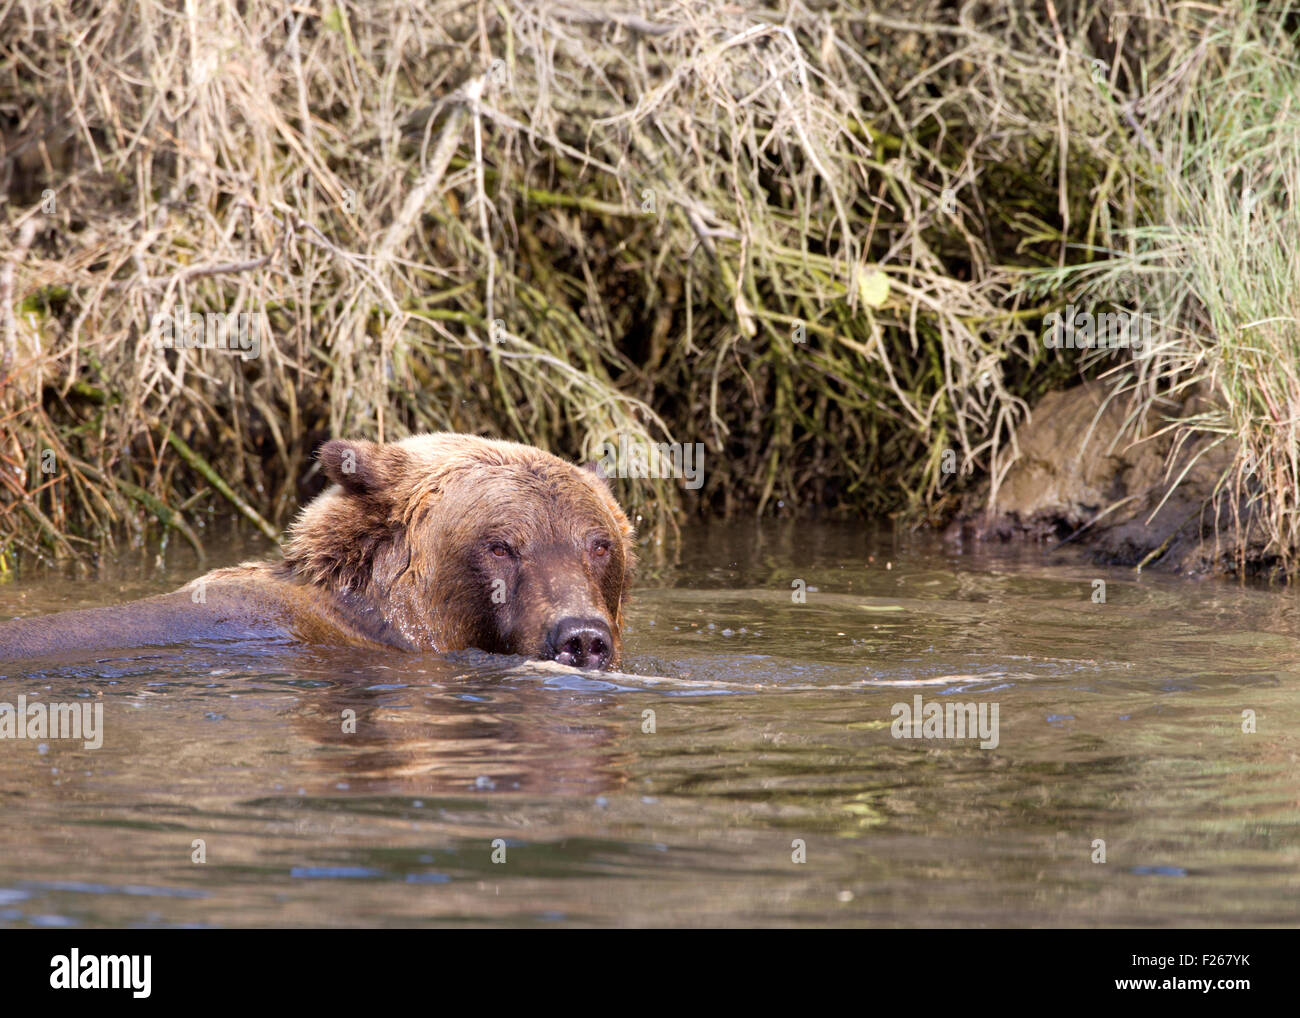 Grizzly Bear Submerged in Creek - Stock Image